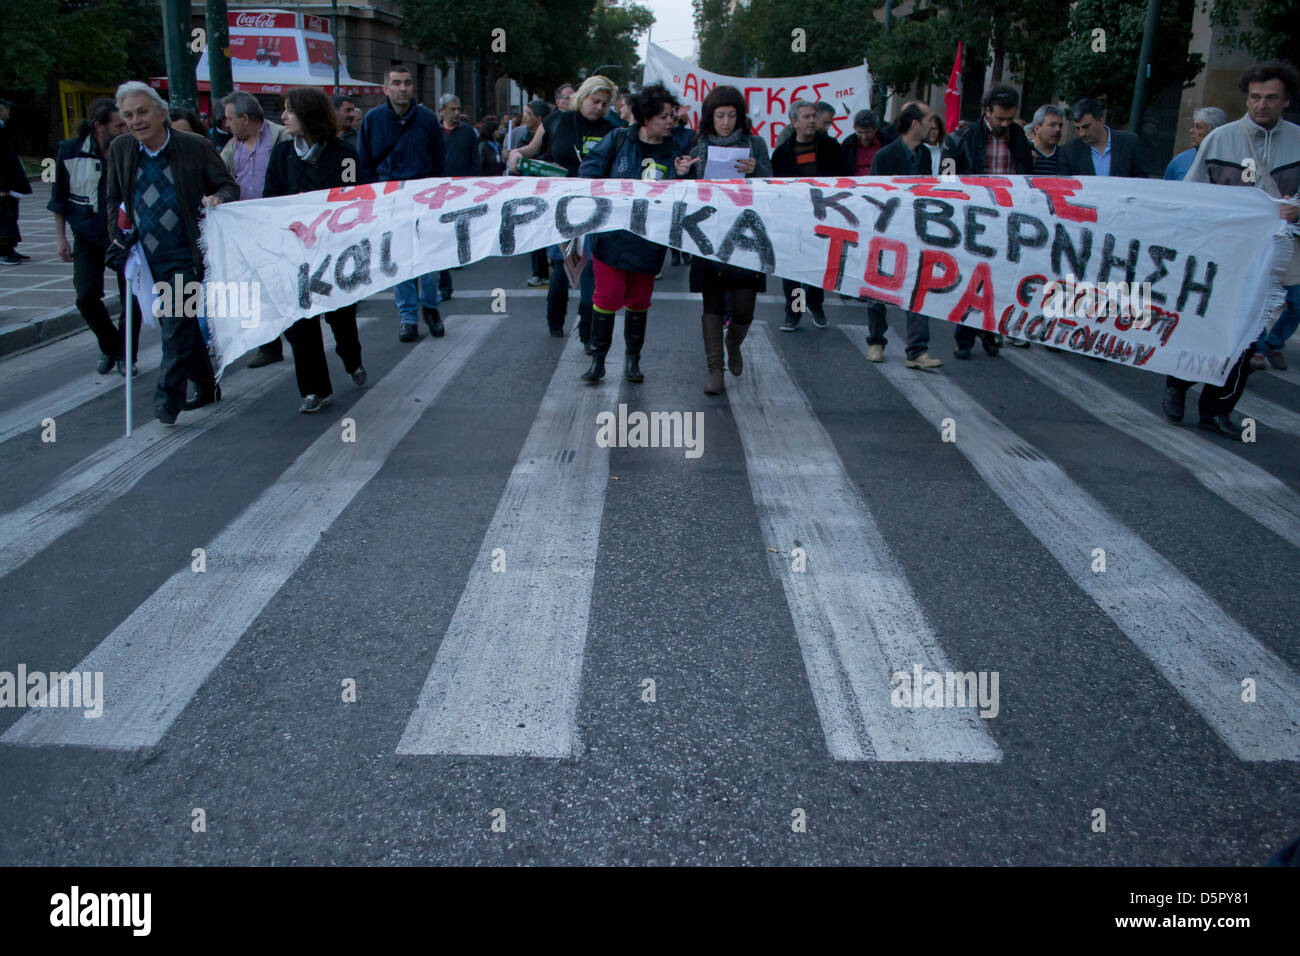 Athens, Greece, 7th April 2013. Trade unionists march to the Greek Parliament to protest against austerity. Credit: - Stock Image